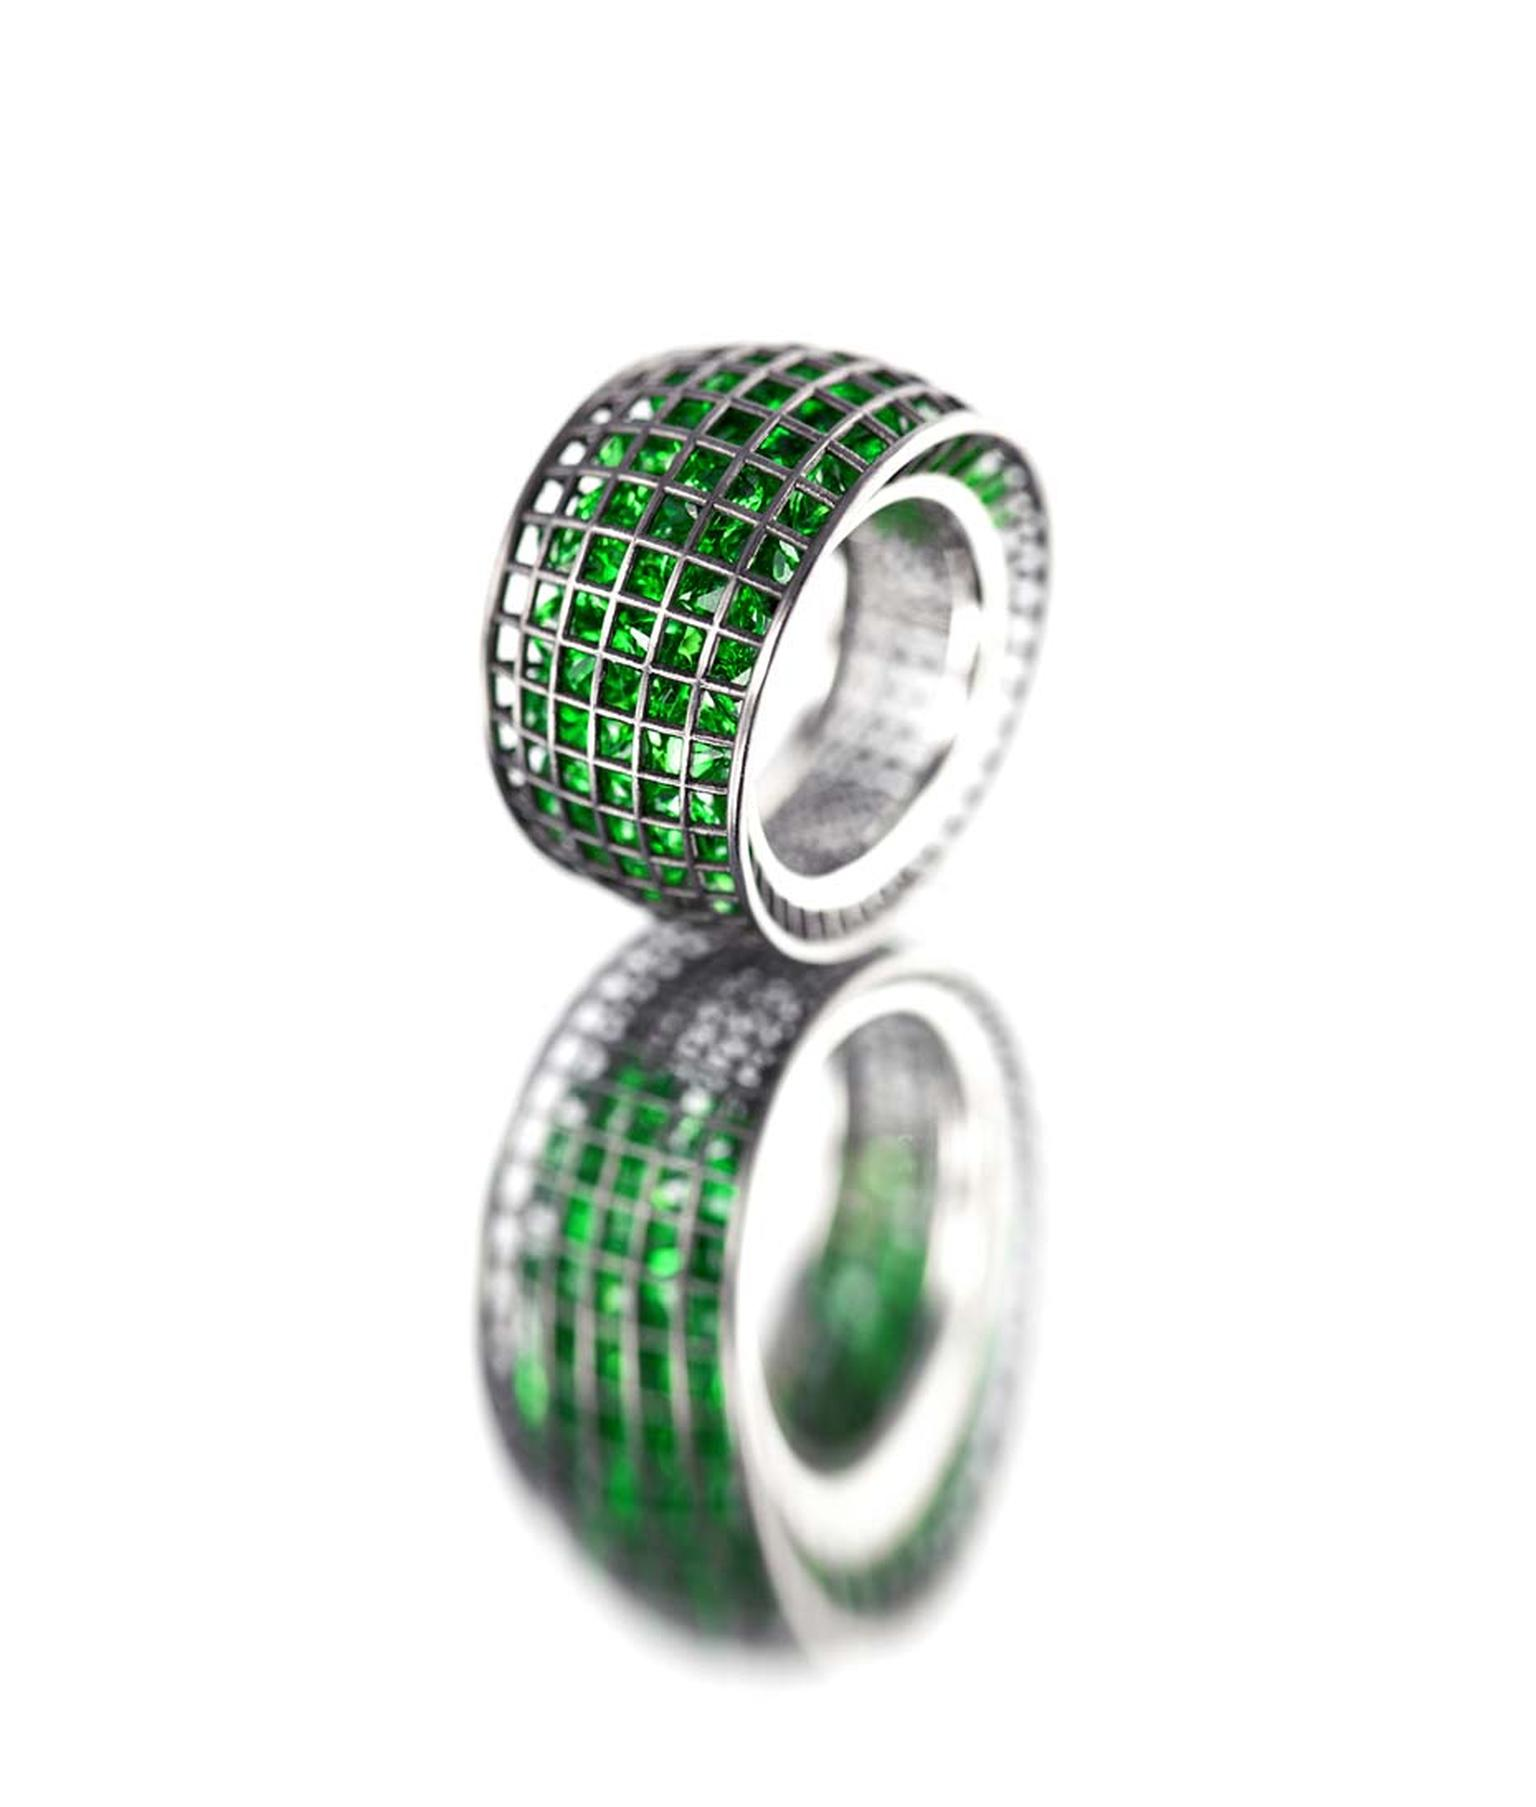 Roule & Co Shaker Taper ring with tsavorites in blackened white gold.